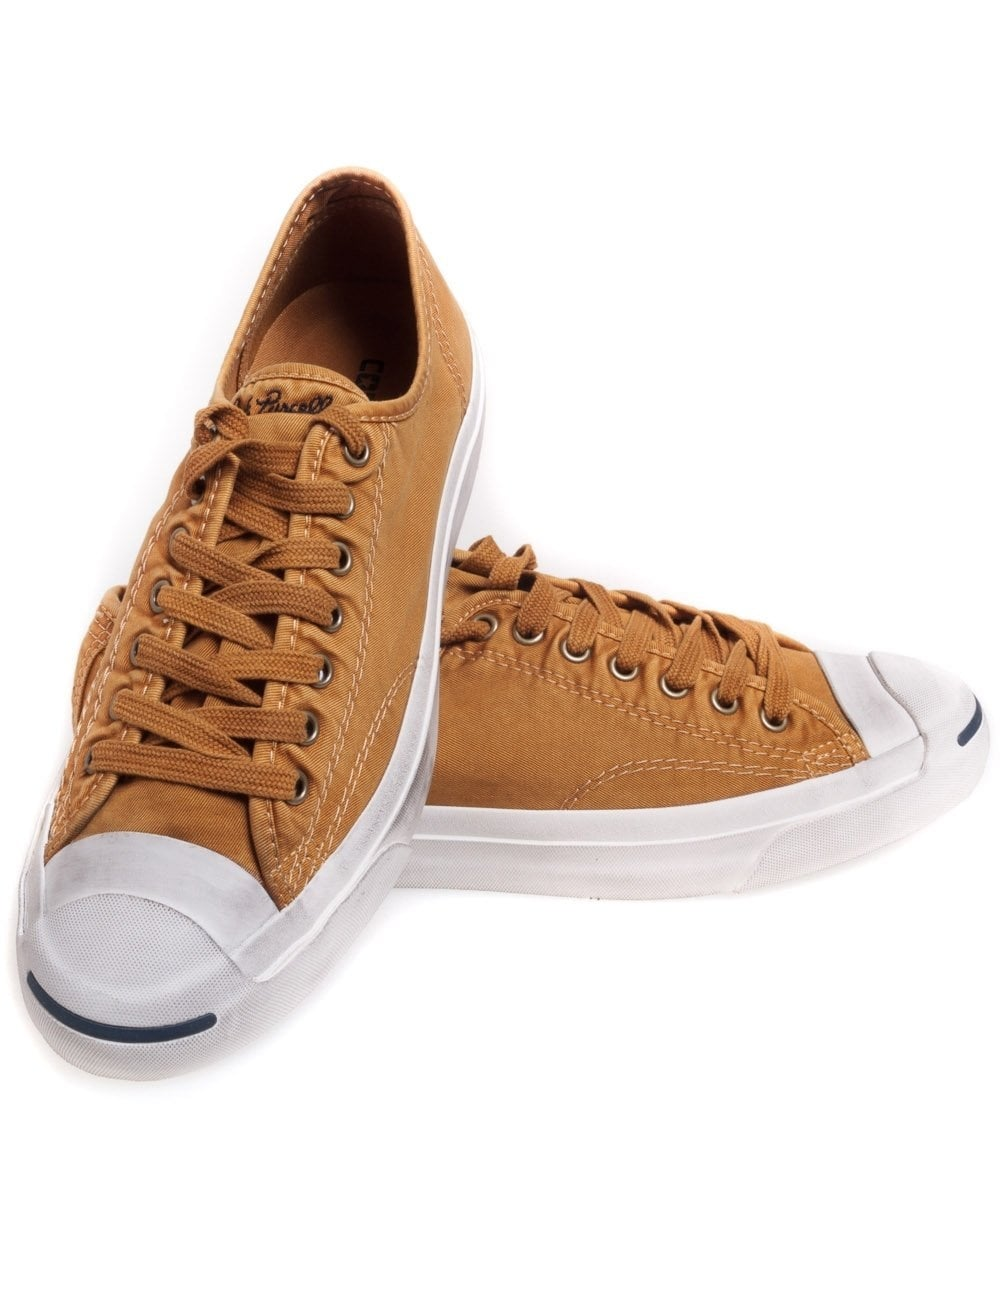 55165bc56fc Converse Jack Purcell Jack Purcell OX - Venice Brown - Footwear from ...